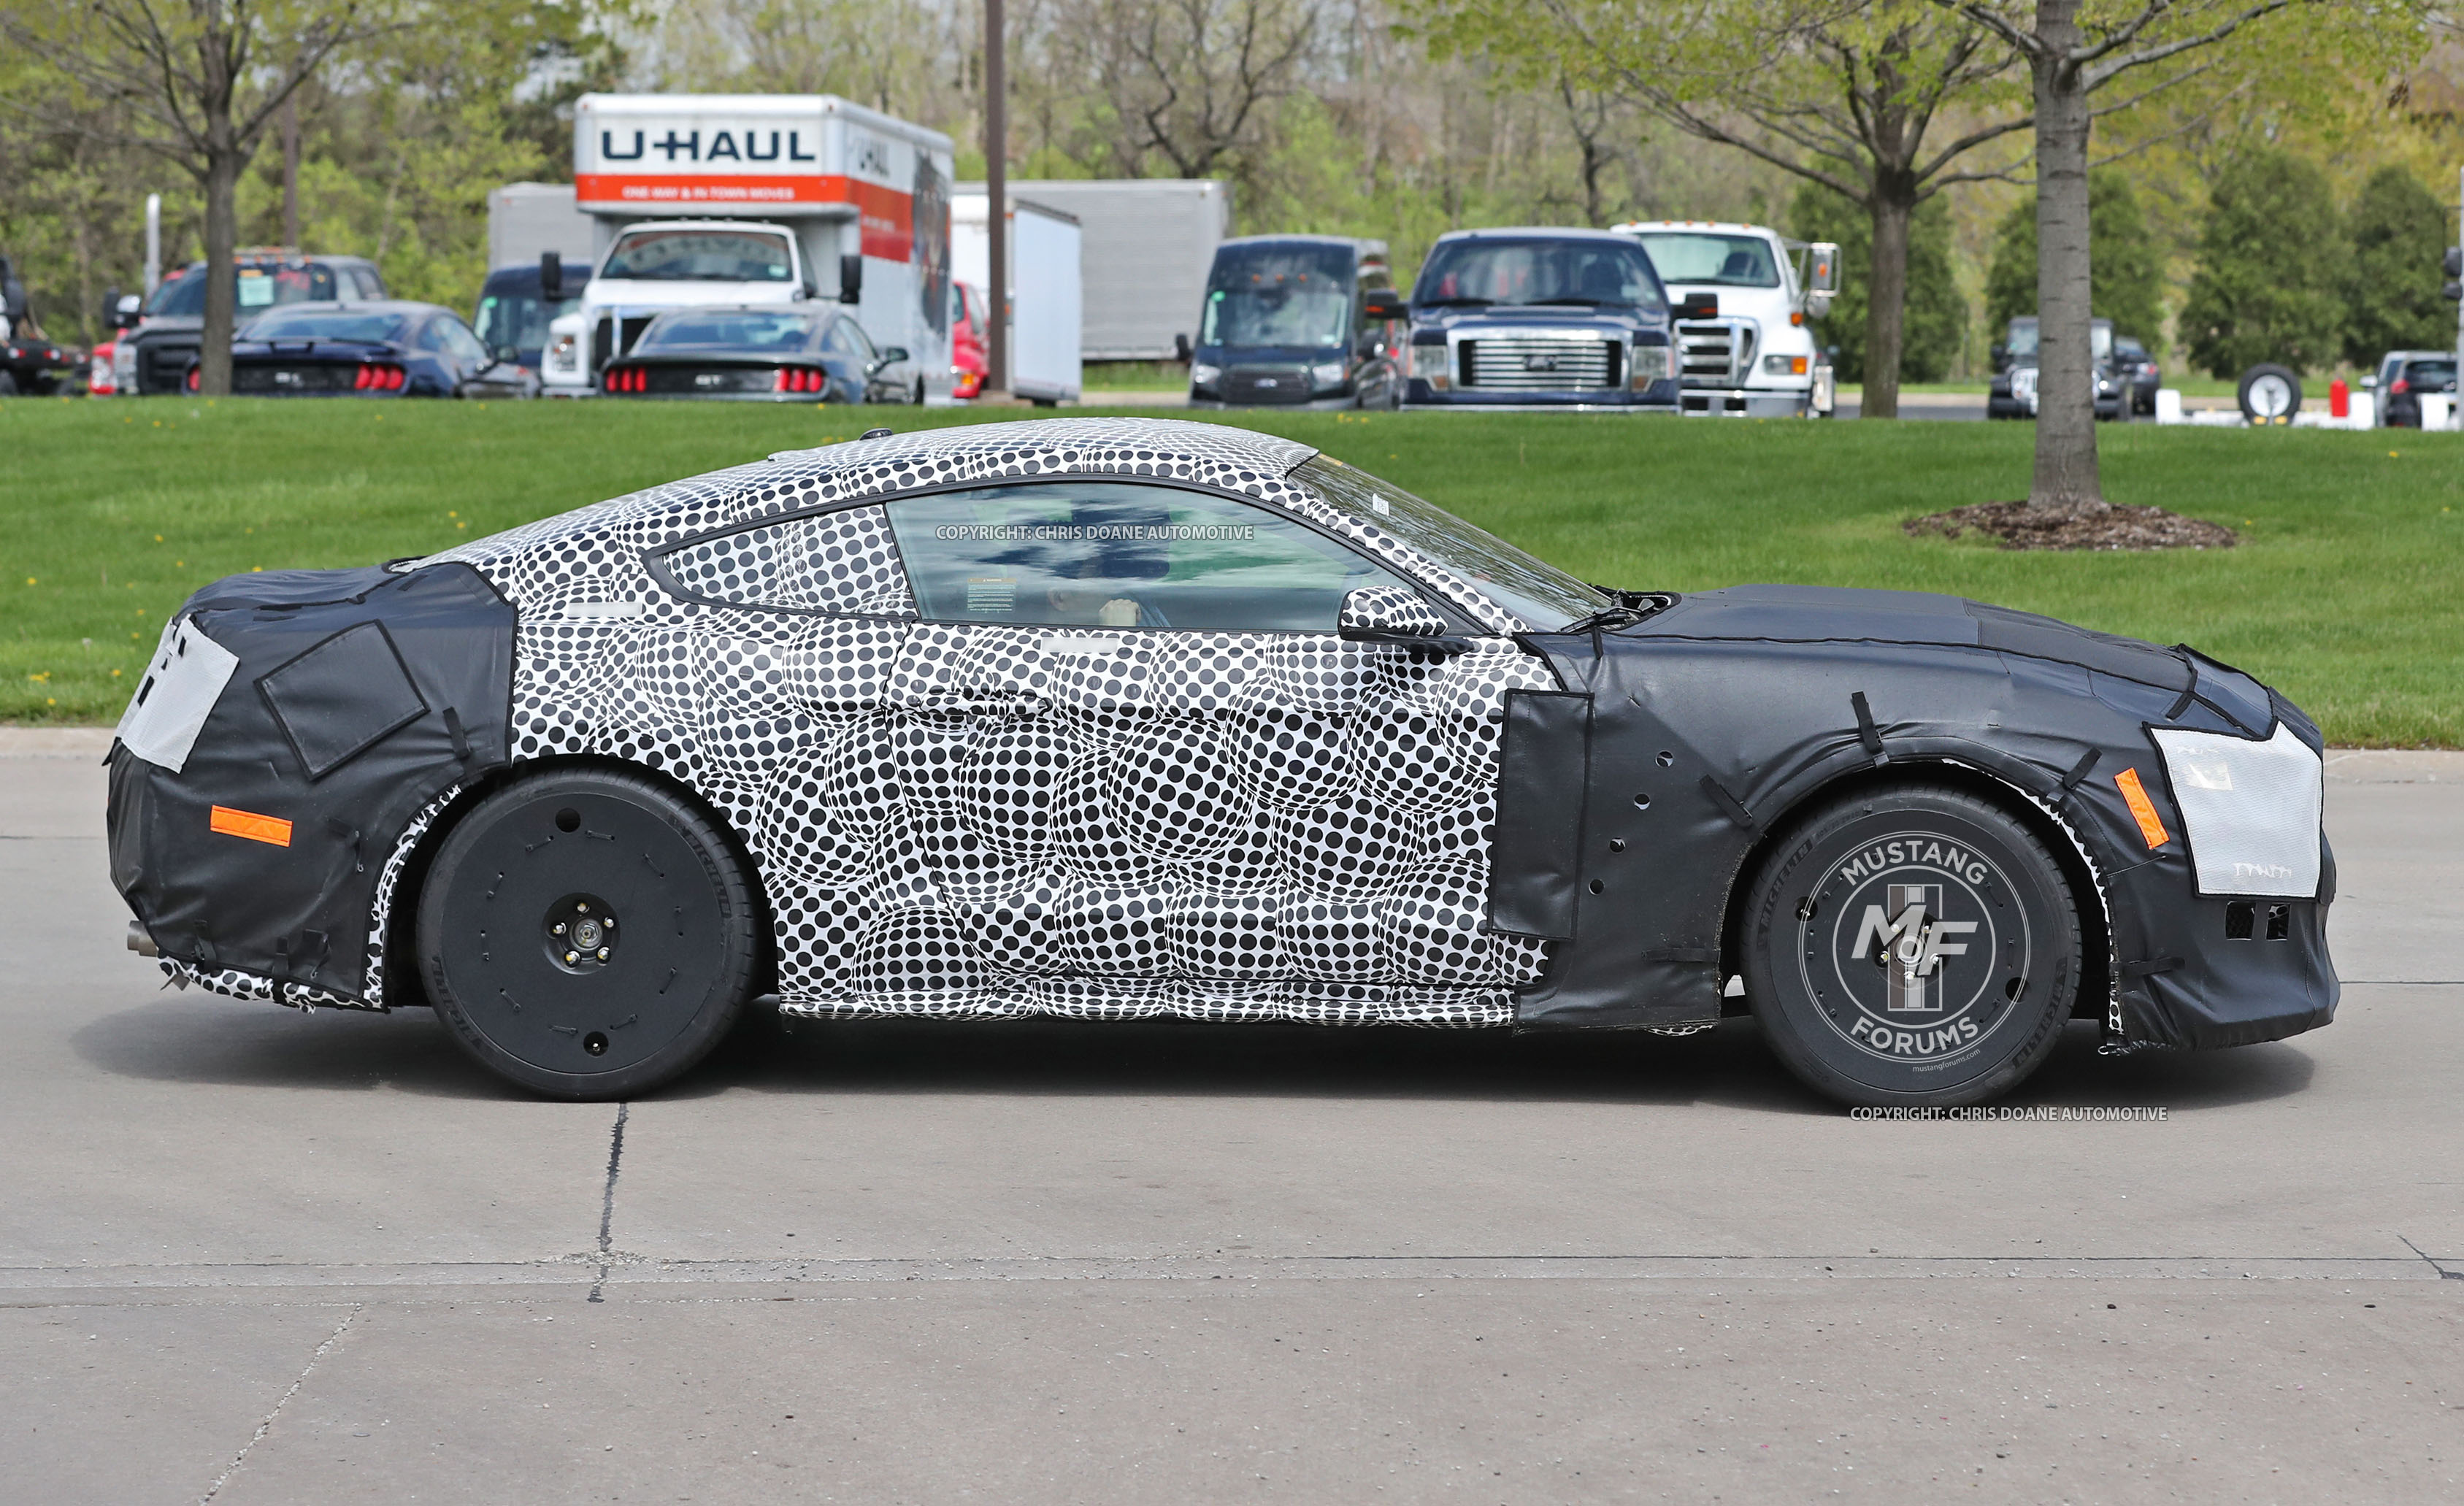 2019 ford mustang shelby gt500 spy shots 21  mustangforums